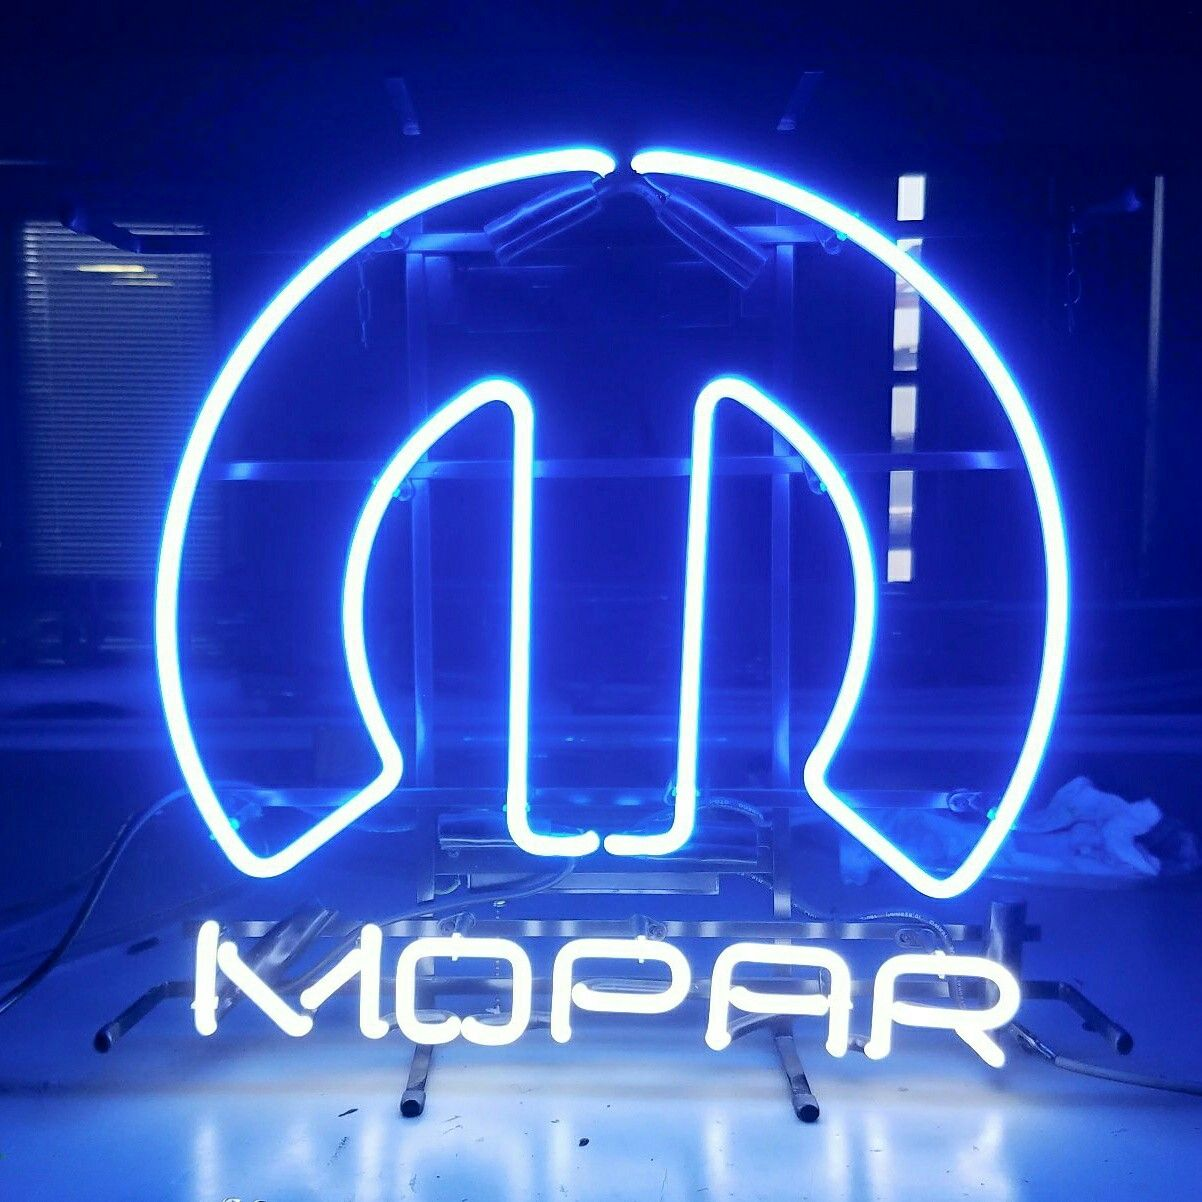 Pin By Jeff Soper On Neon Signs By Me With Images Neon Signs Neon Signs